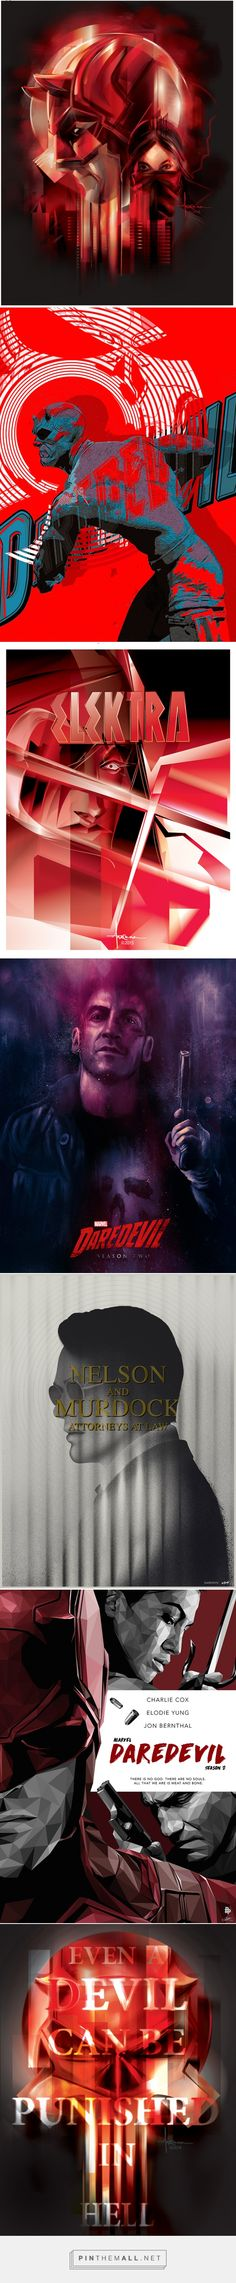 "Tribute to Netflix/ Marvel ""Daredevil: Season Netflix Daredevil, Netflix Marvel, Marvel Comics, Marvel Vs, Daredevil Punisher, Defenders Marvel, Marvel Series, Comic Movies, Disney Marvel"